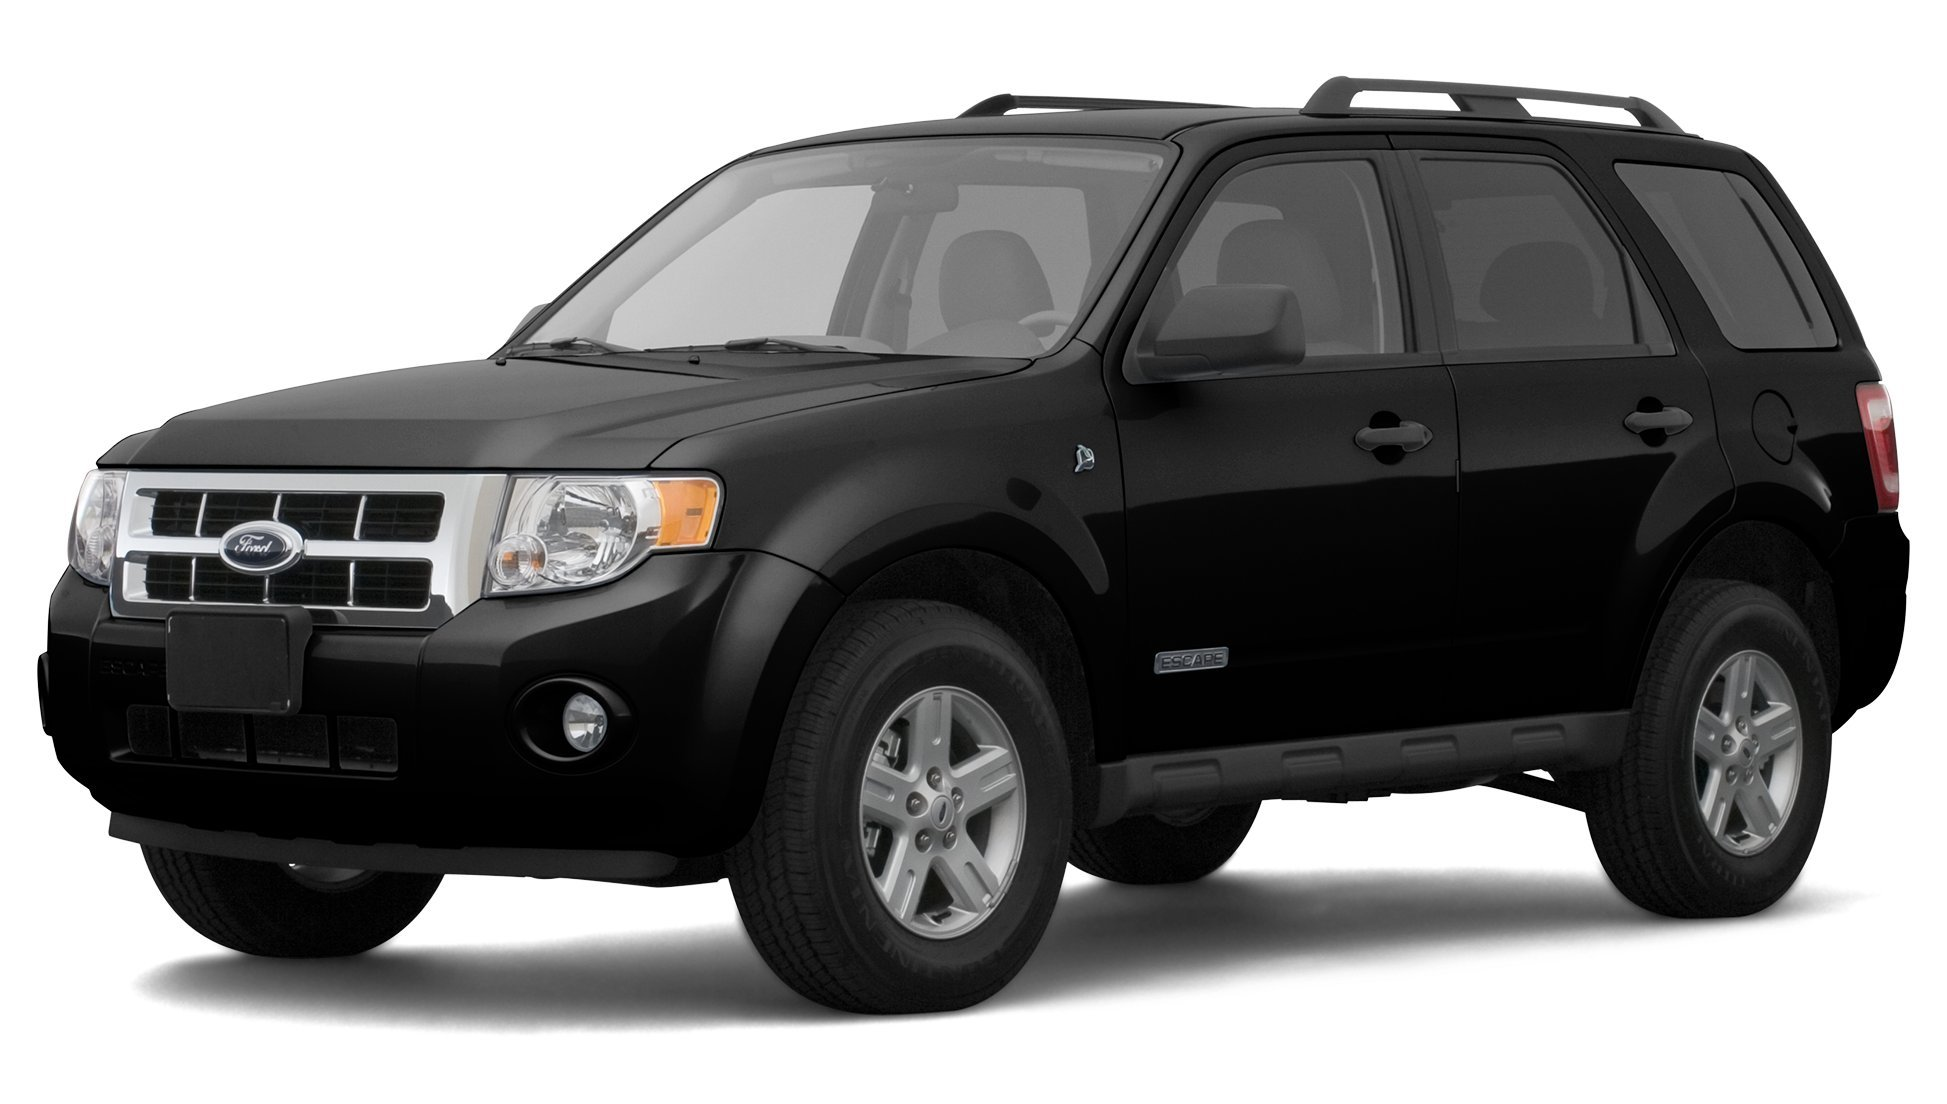 2008 ford escape reviews images and specs vehicles. Black Bedroom Furniture Sets. Home Design Ideas